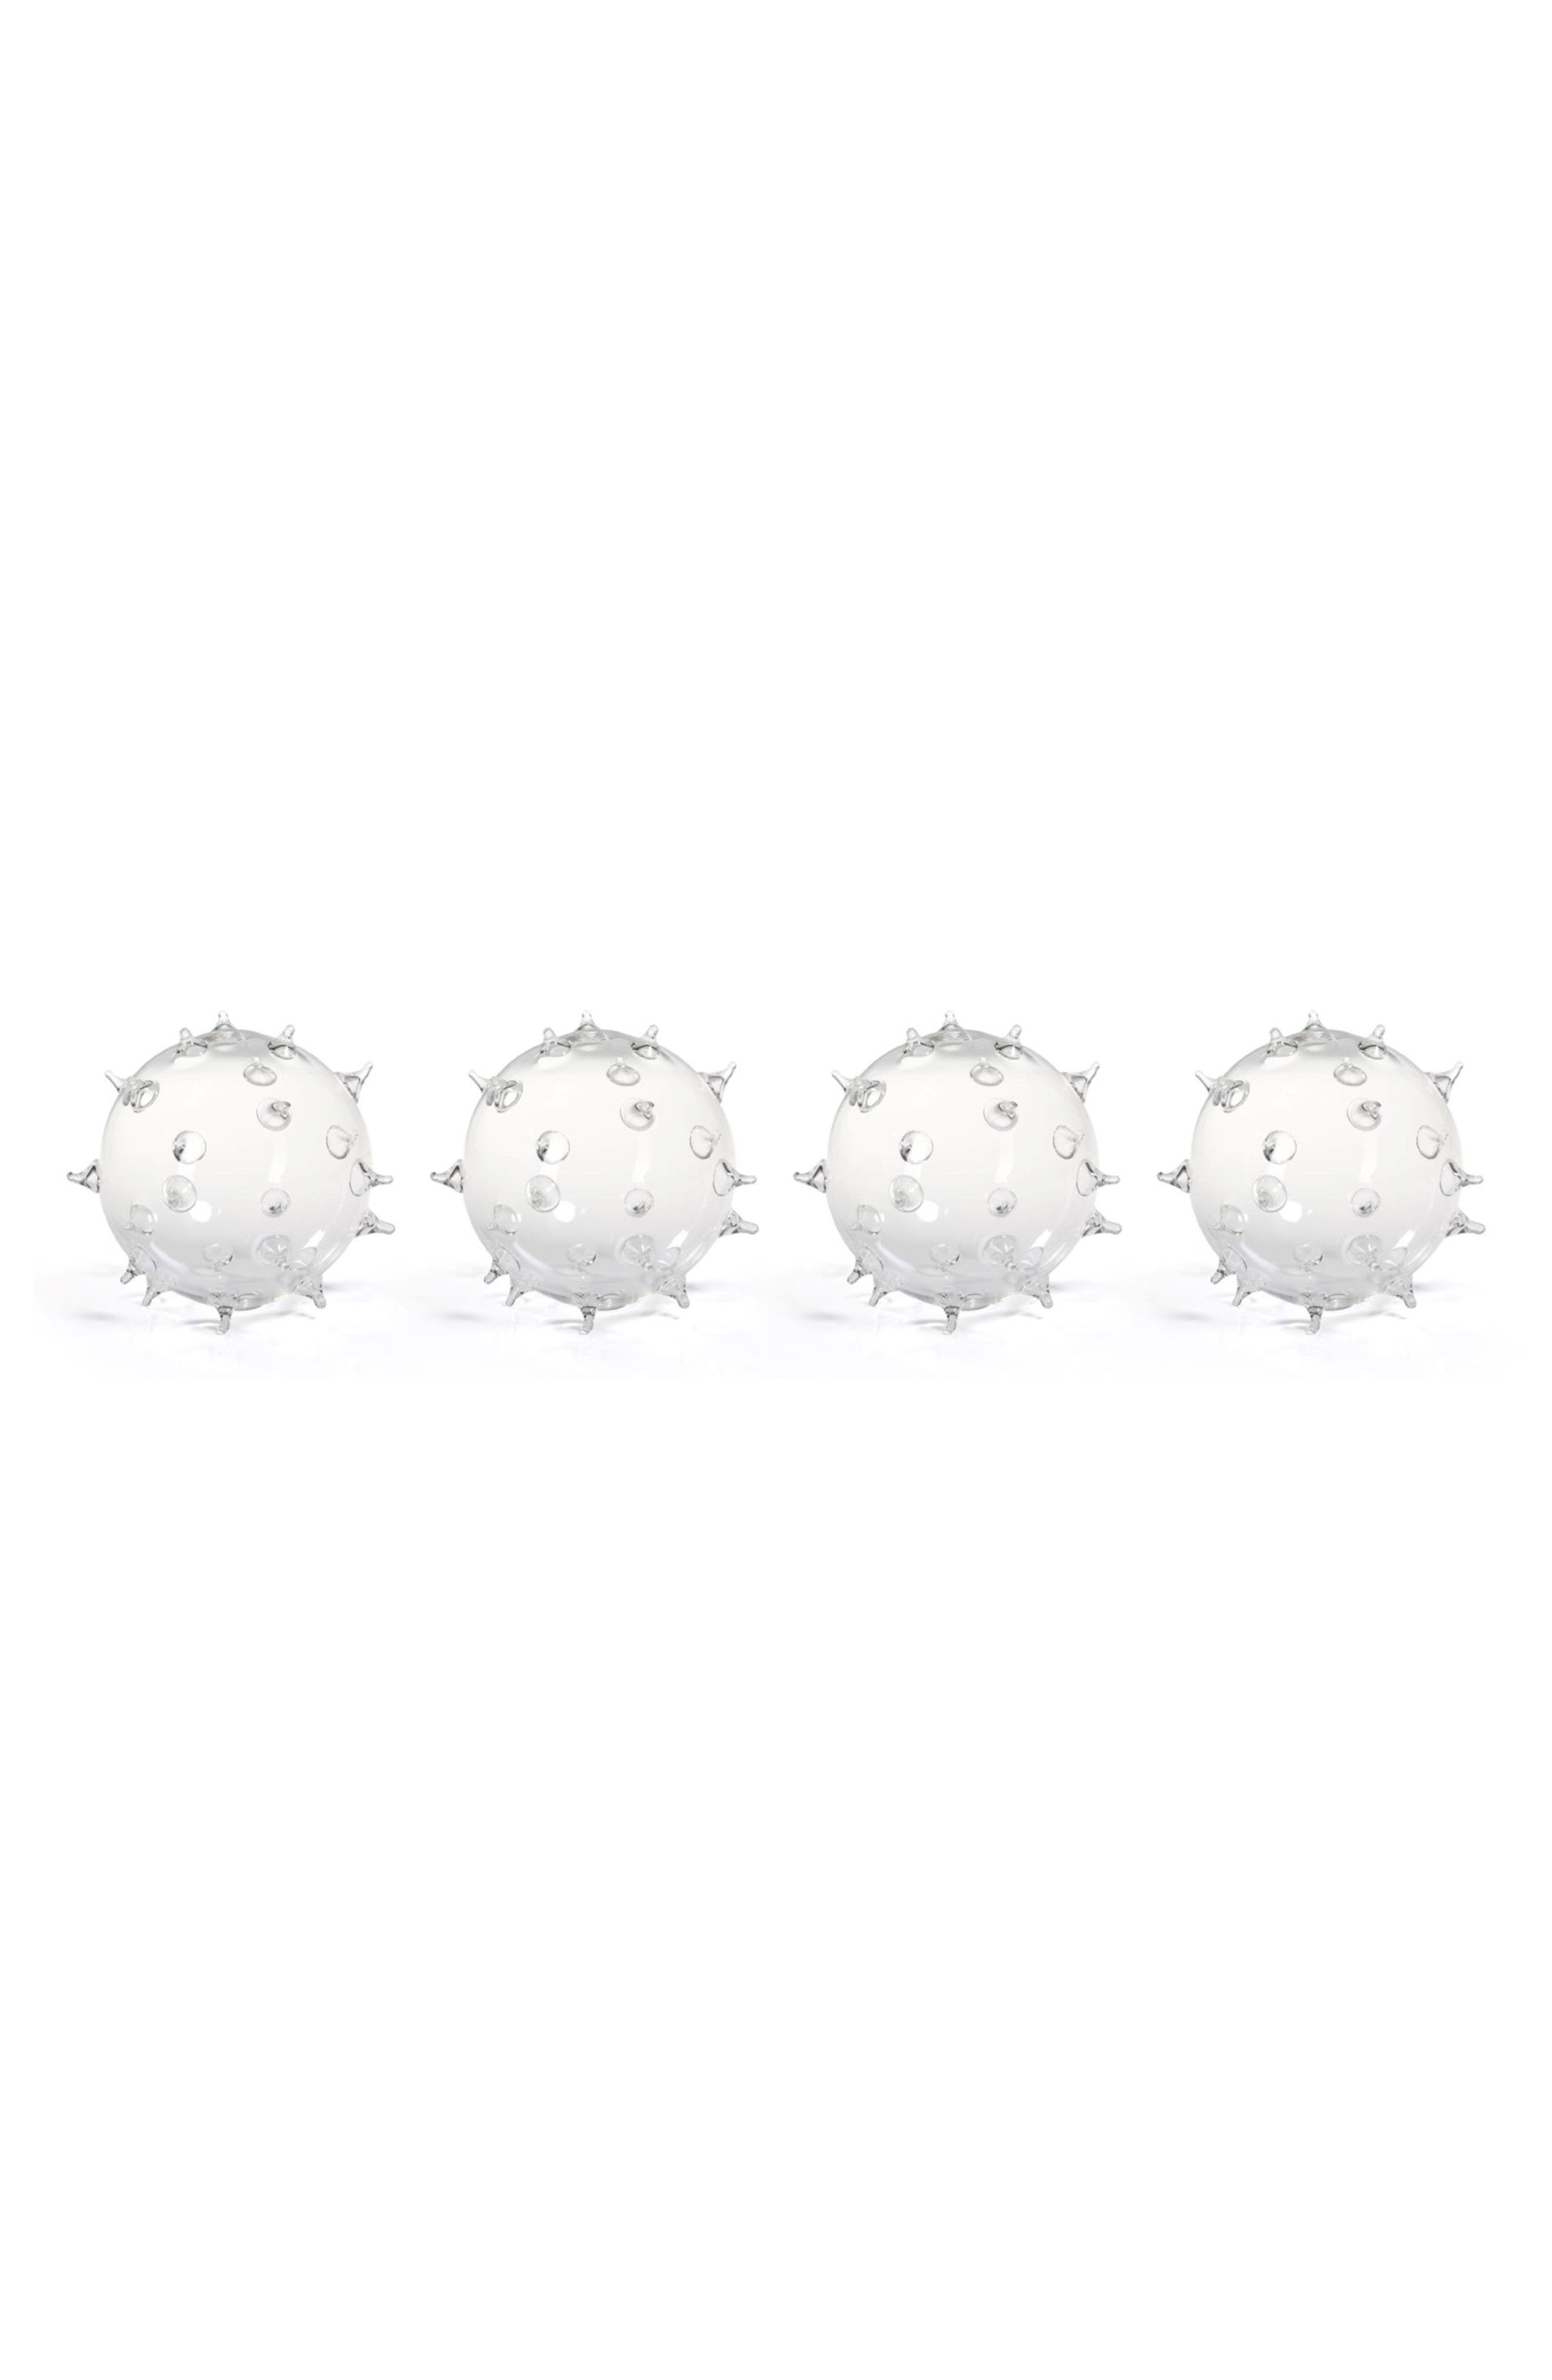 Alternate Image 1 Selected - Zodax Suri Set of 4 Spiked Glass Vases